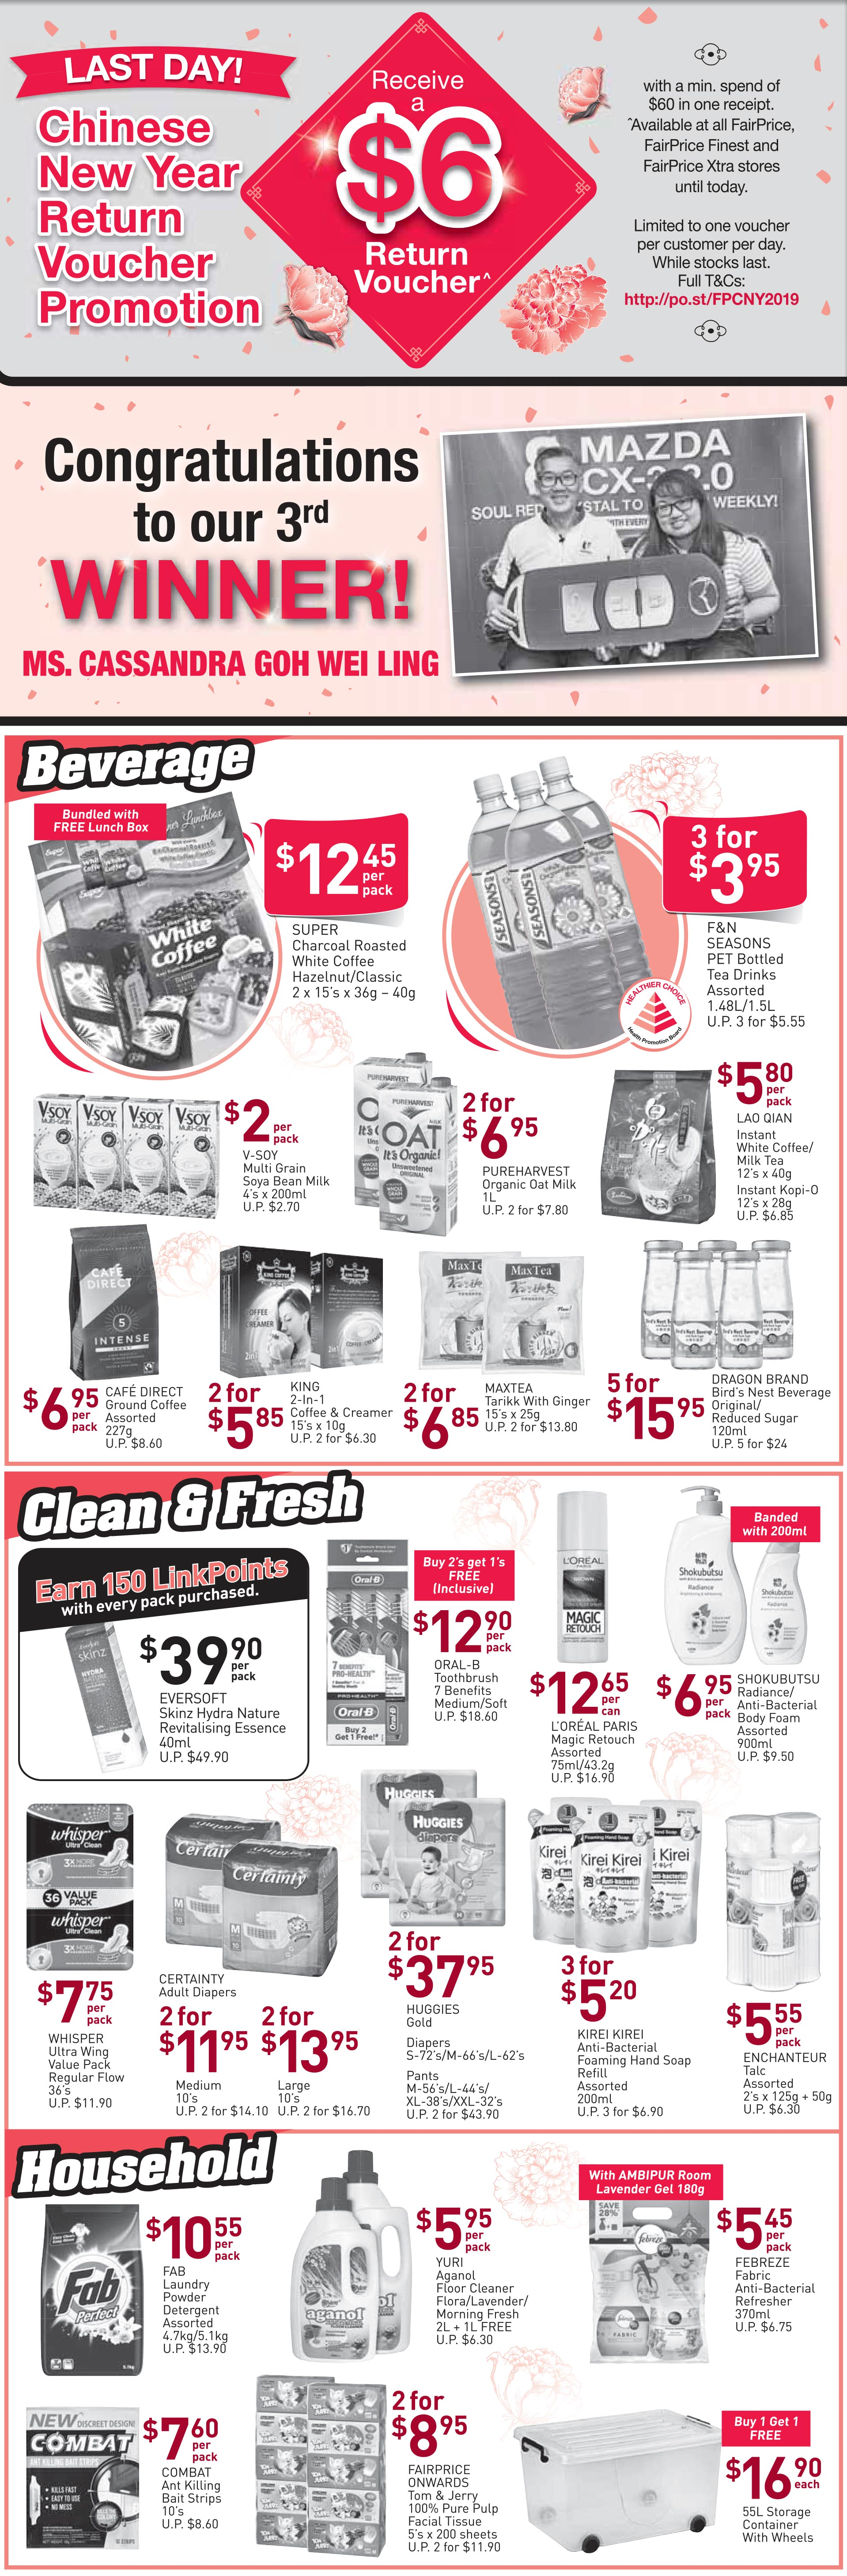 NTUC FairPrice Singapore Your Weekly Saver Promotion 31 Jan - 13 Feb 2019   Why Not Deals 5 & Promotions